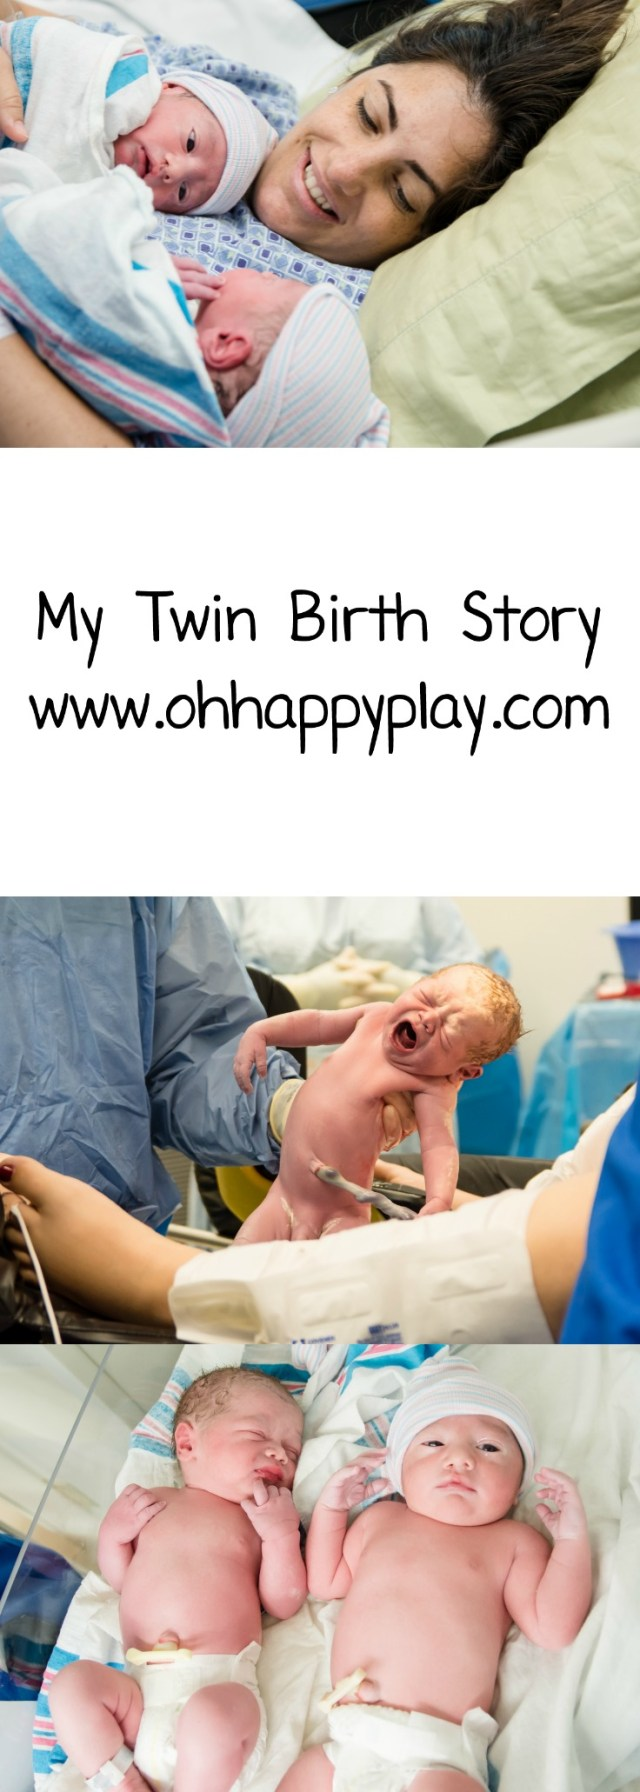 Florida Motherhood blogger, Oh Happy Play, shares her twins birth story. Find out more about Bradley & Beau's birth!